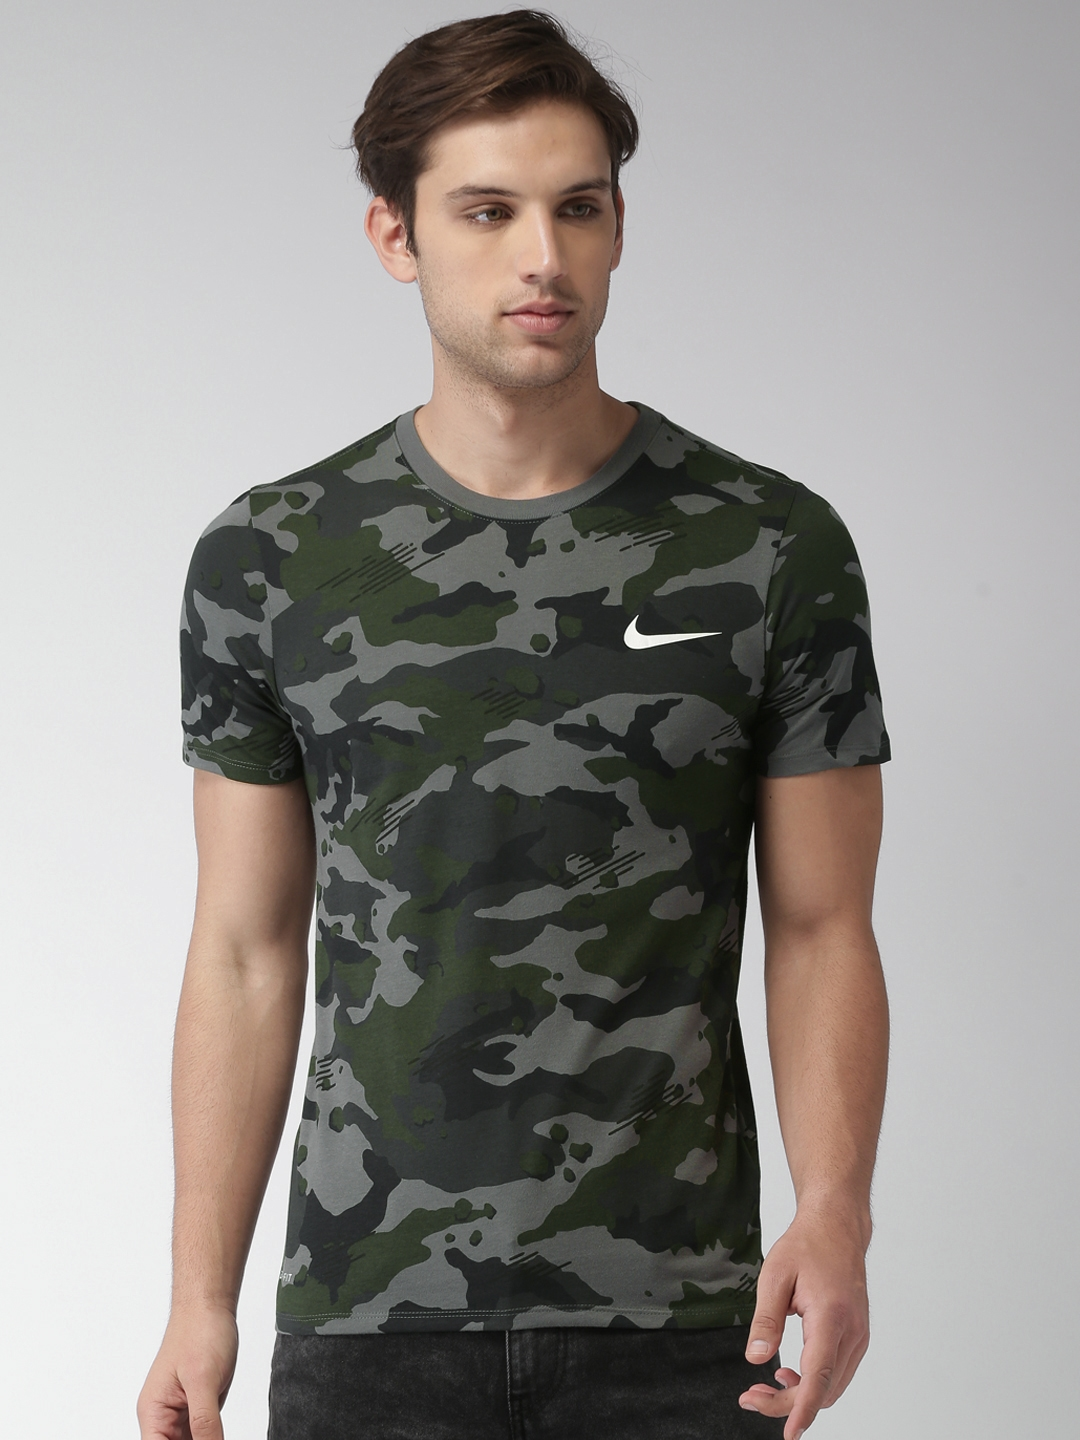 7152babff Nike Men Grey & Green AS M NK DRY DFC CAMO AOP Camouflage Print T-shirt